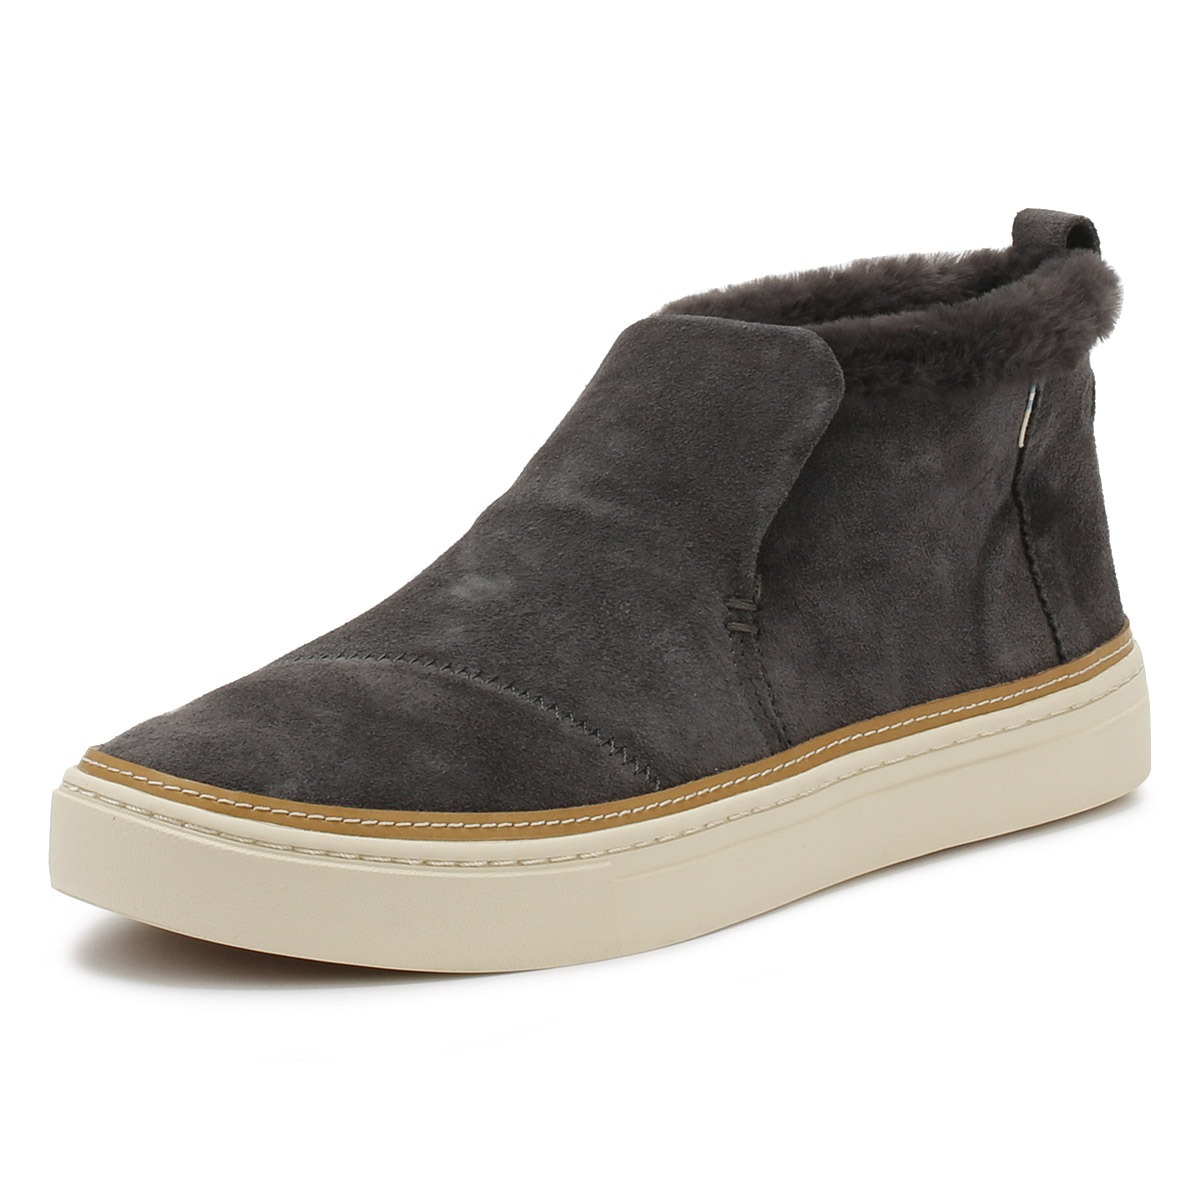 Details about TOMS Womens Grey Suede Paxton Shoes Ladies Slip On Casual  Ankle Boots 237113436cbe